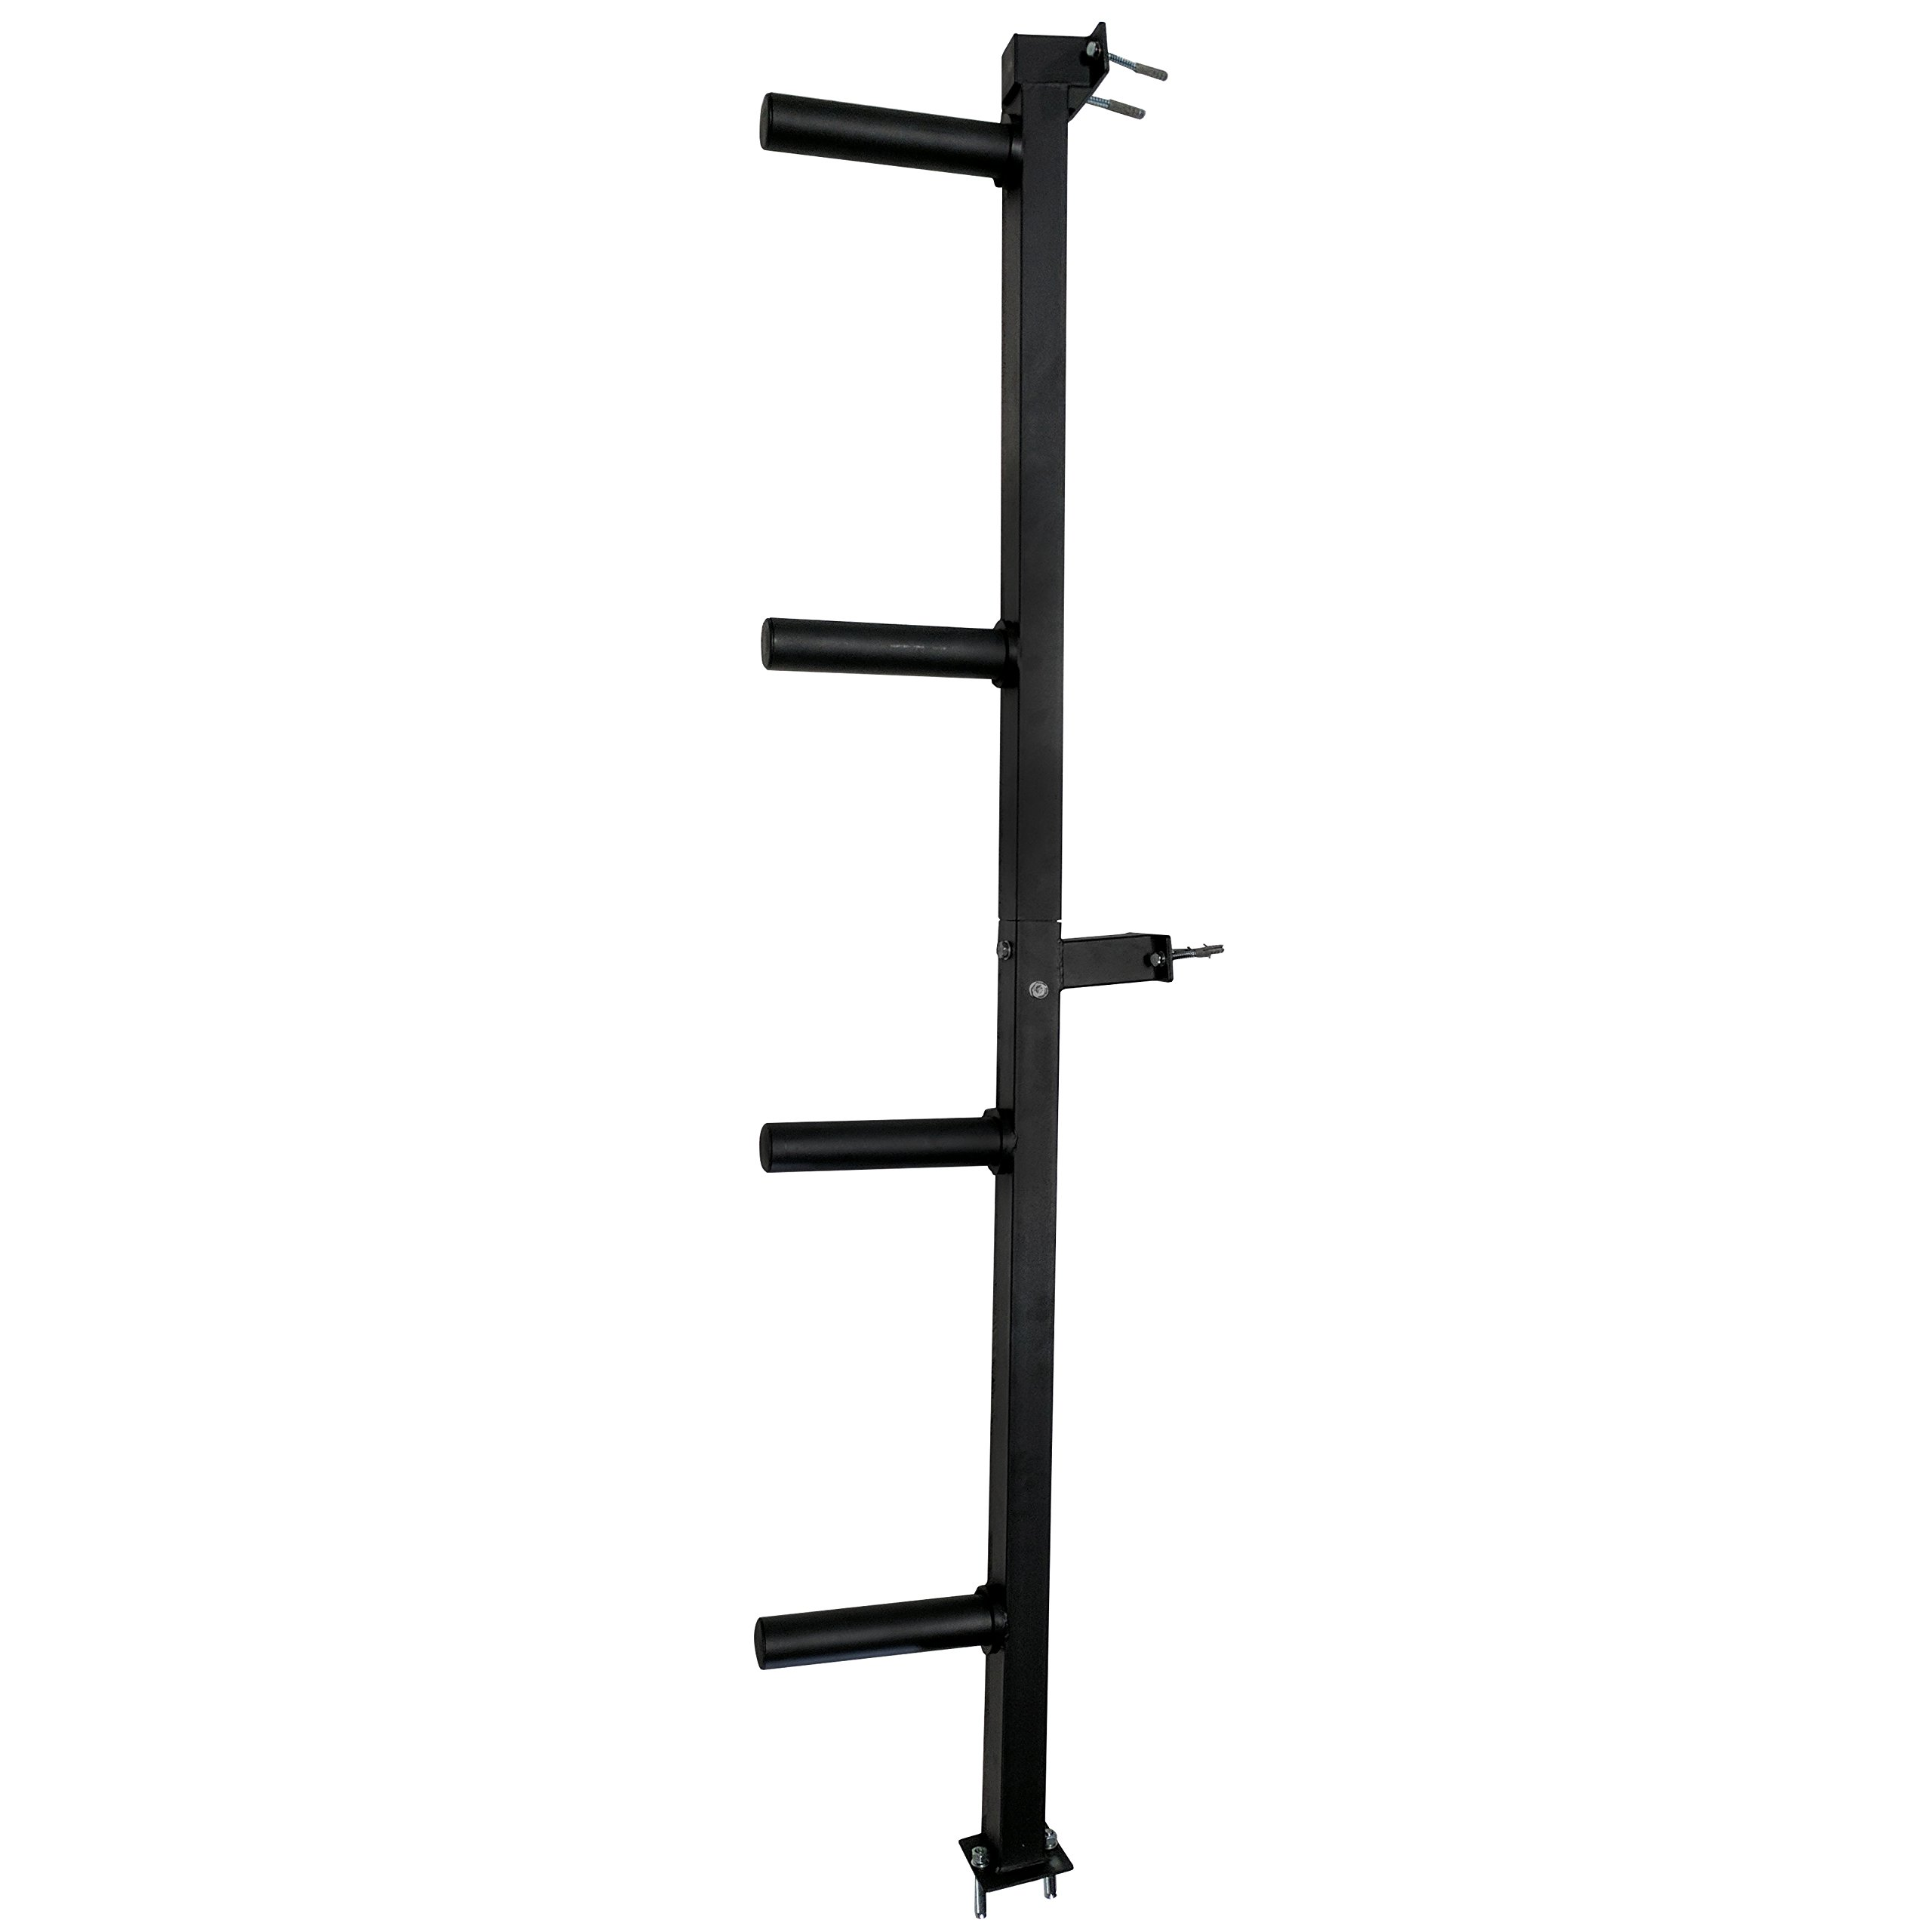 Titan Wall Mounted 4-Peg Olympic Bumper Plate Weight Rack Storage by Titan Fitness